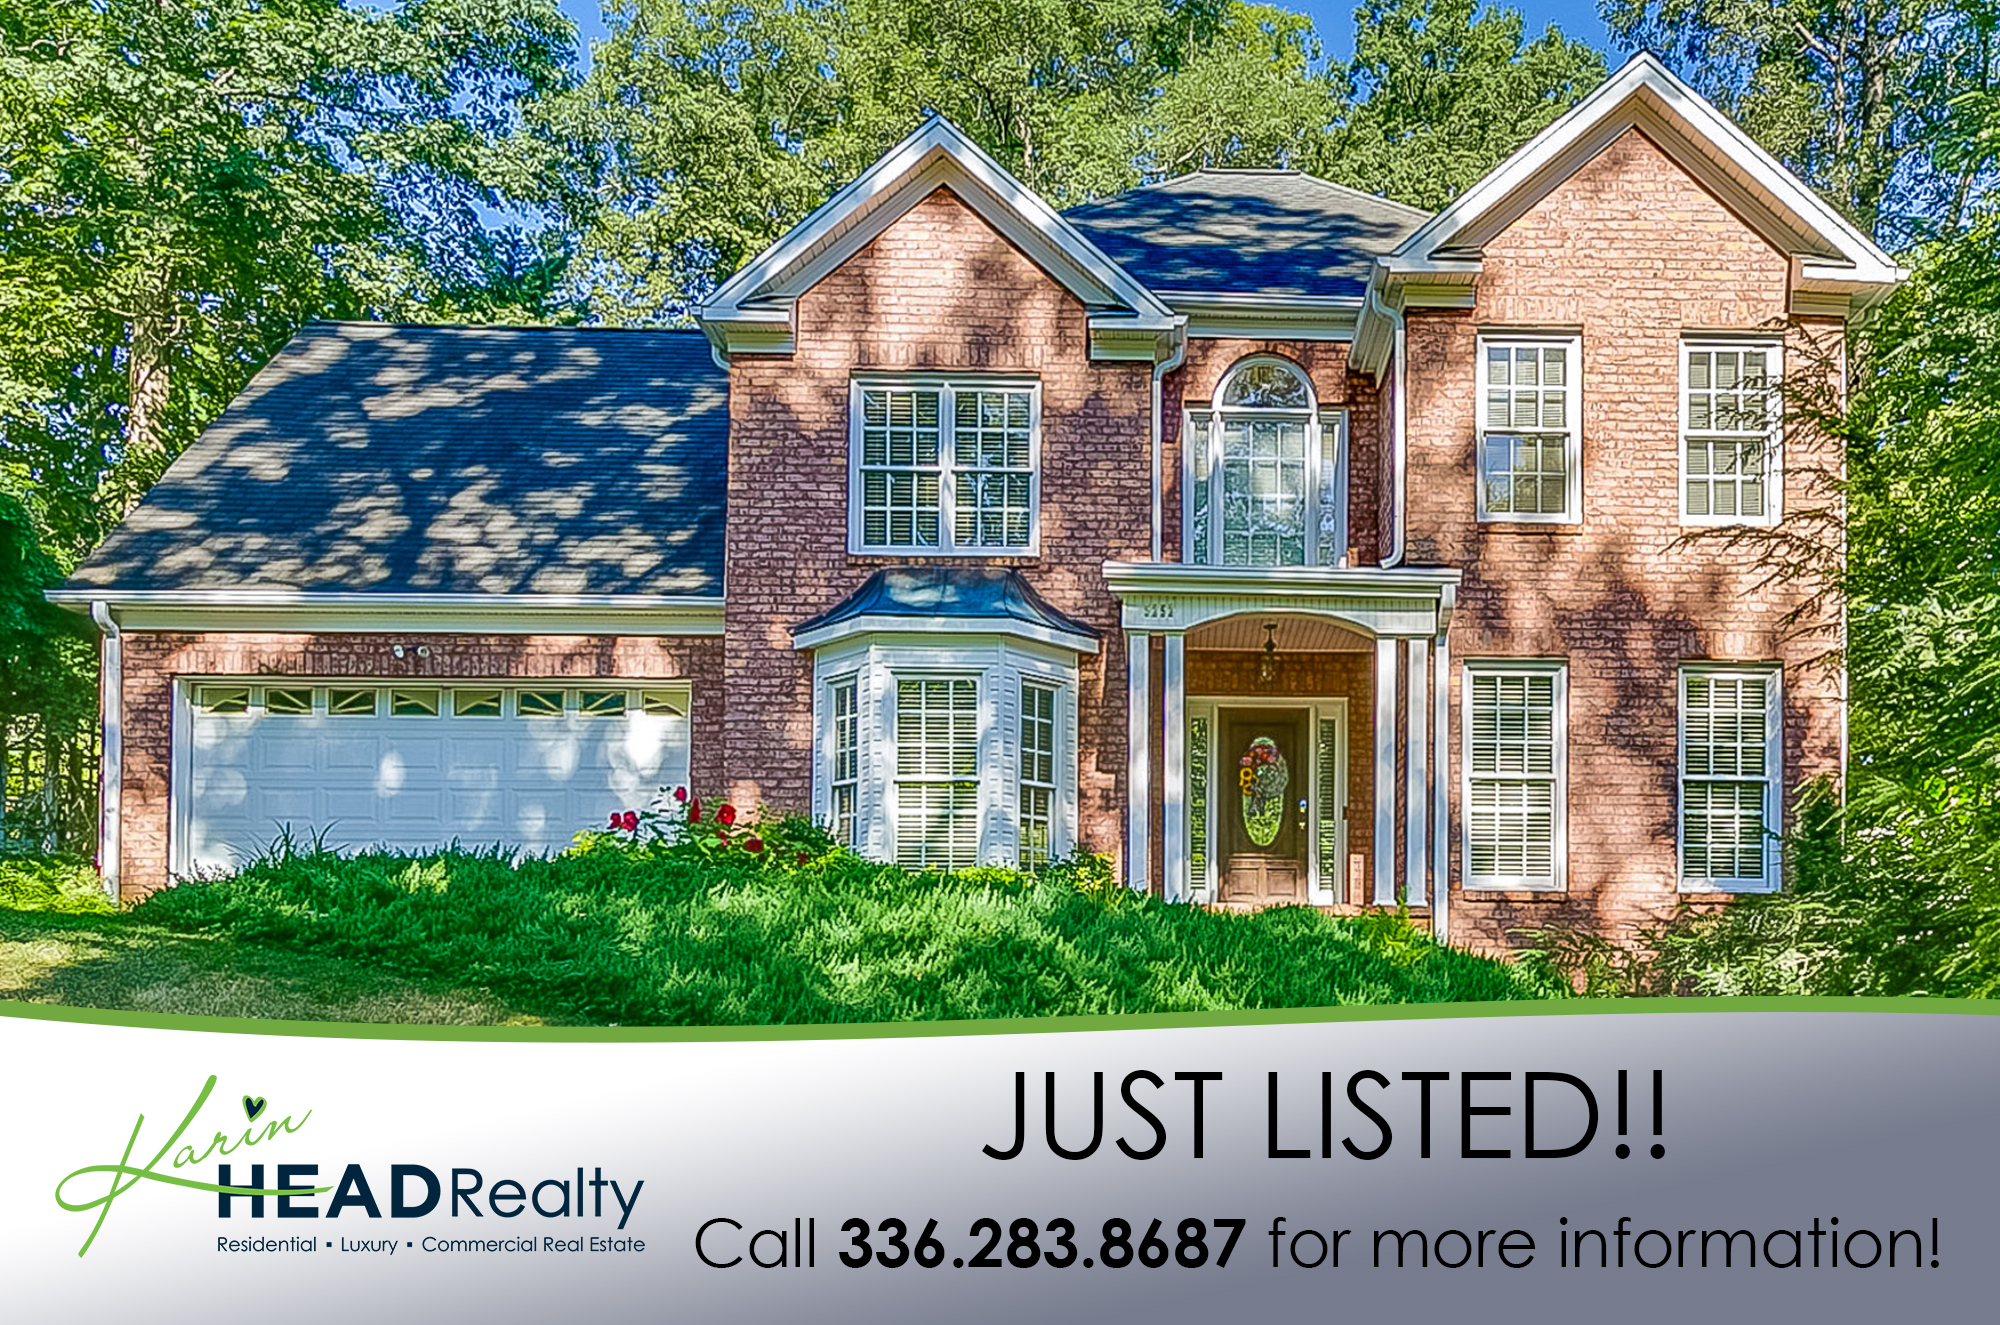 5252 Bridge Pointe Dr_Just Listed.jpg